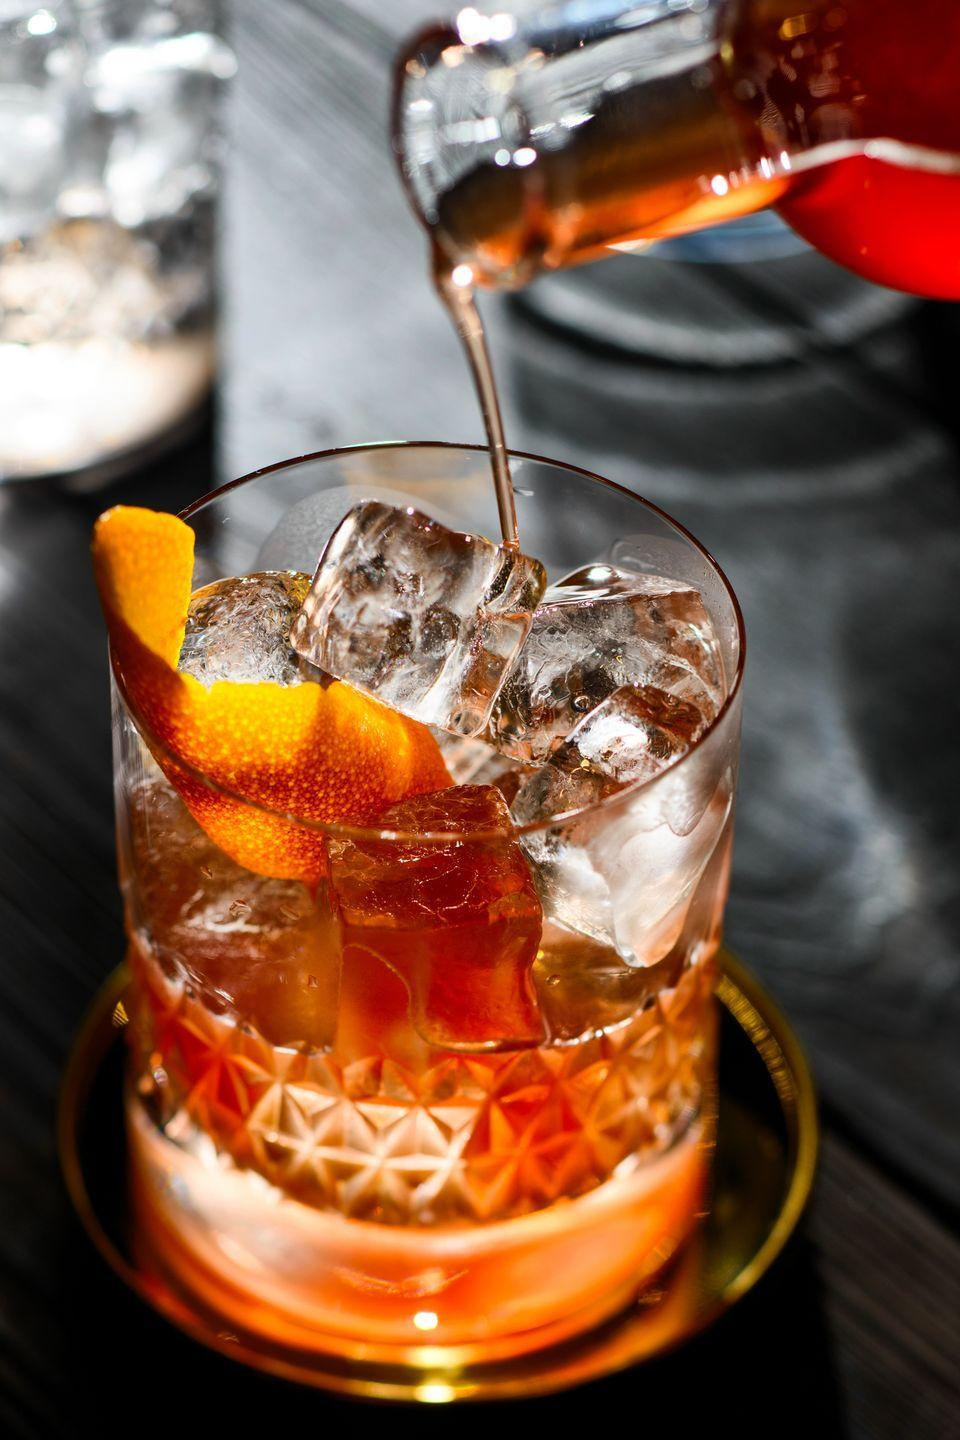 <p>Up your skills behind the bar by taking a class that'll teach you all about proper drink-making techniques and give you a few new ideas to try at home. You can even try an online class from the comfort of your home!</p>